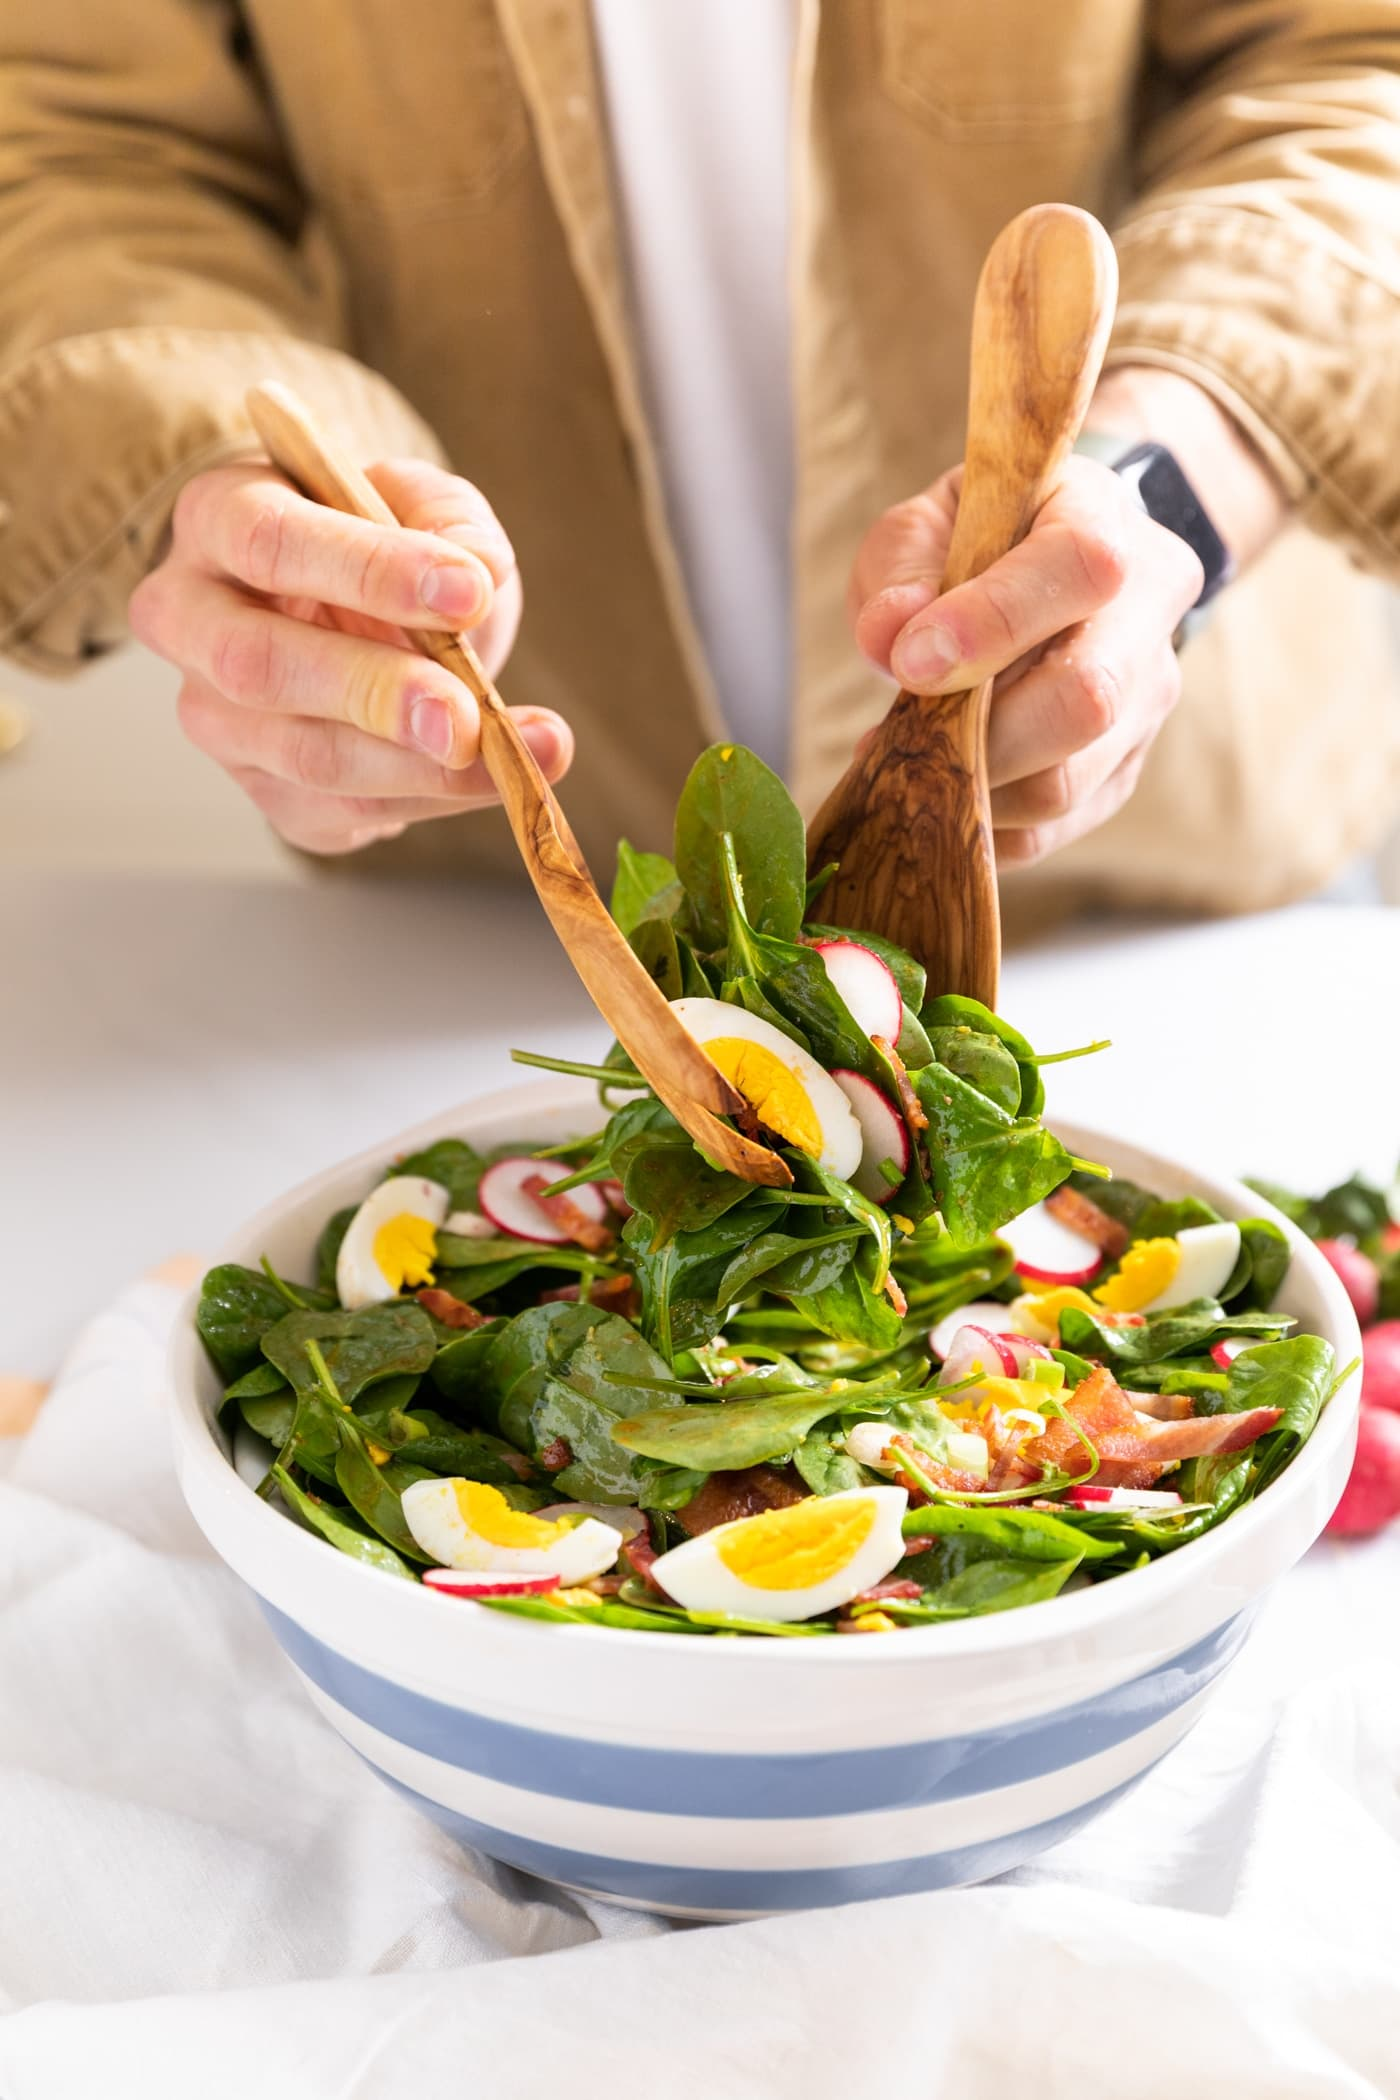 Two hands holding wooden serving spoons taking serving of spinach salad from large white bowl with blue stripes